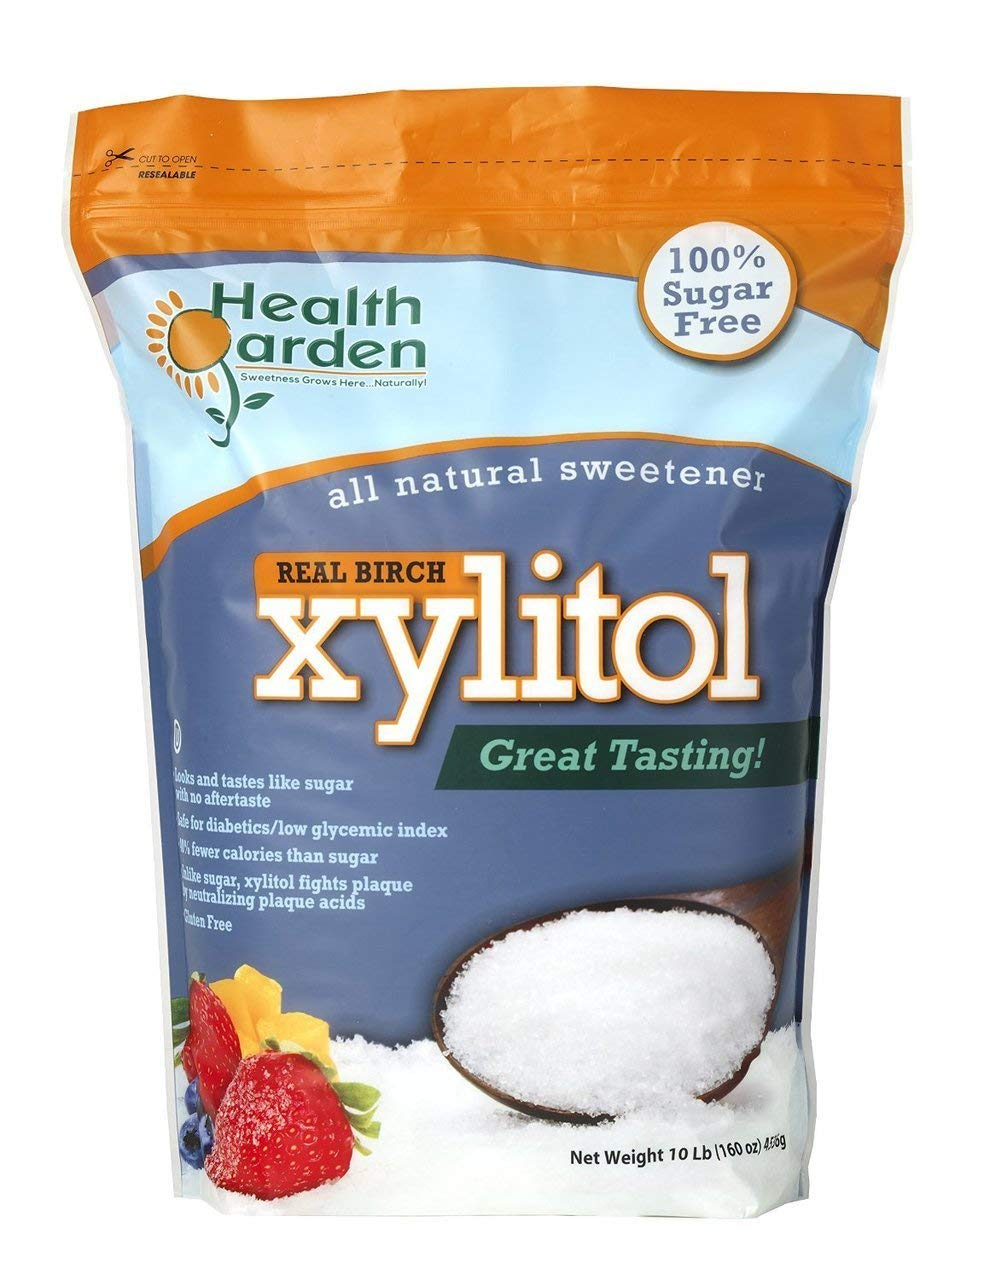 Health Garden Birch Xylitol Sugar Free Sweetener, All Natural, Non GMO (Not from Corn (10 LB) by HEALTH GARDEN (Image #1)